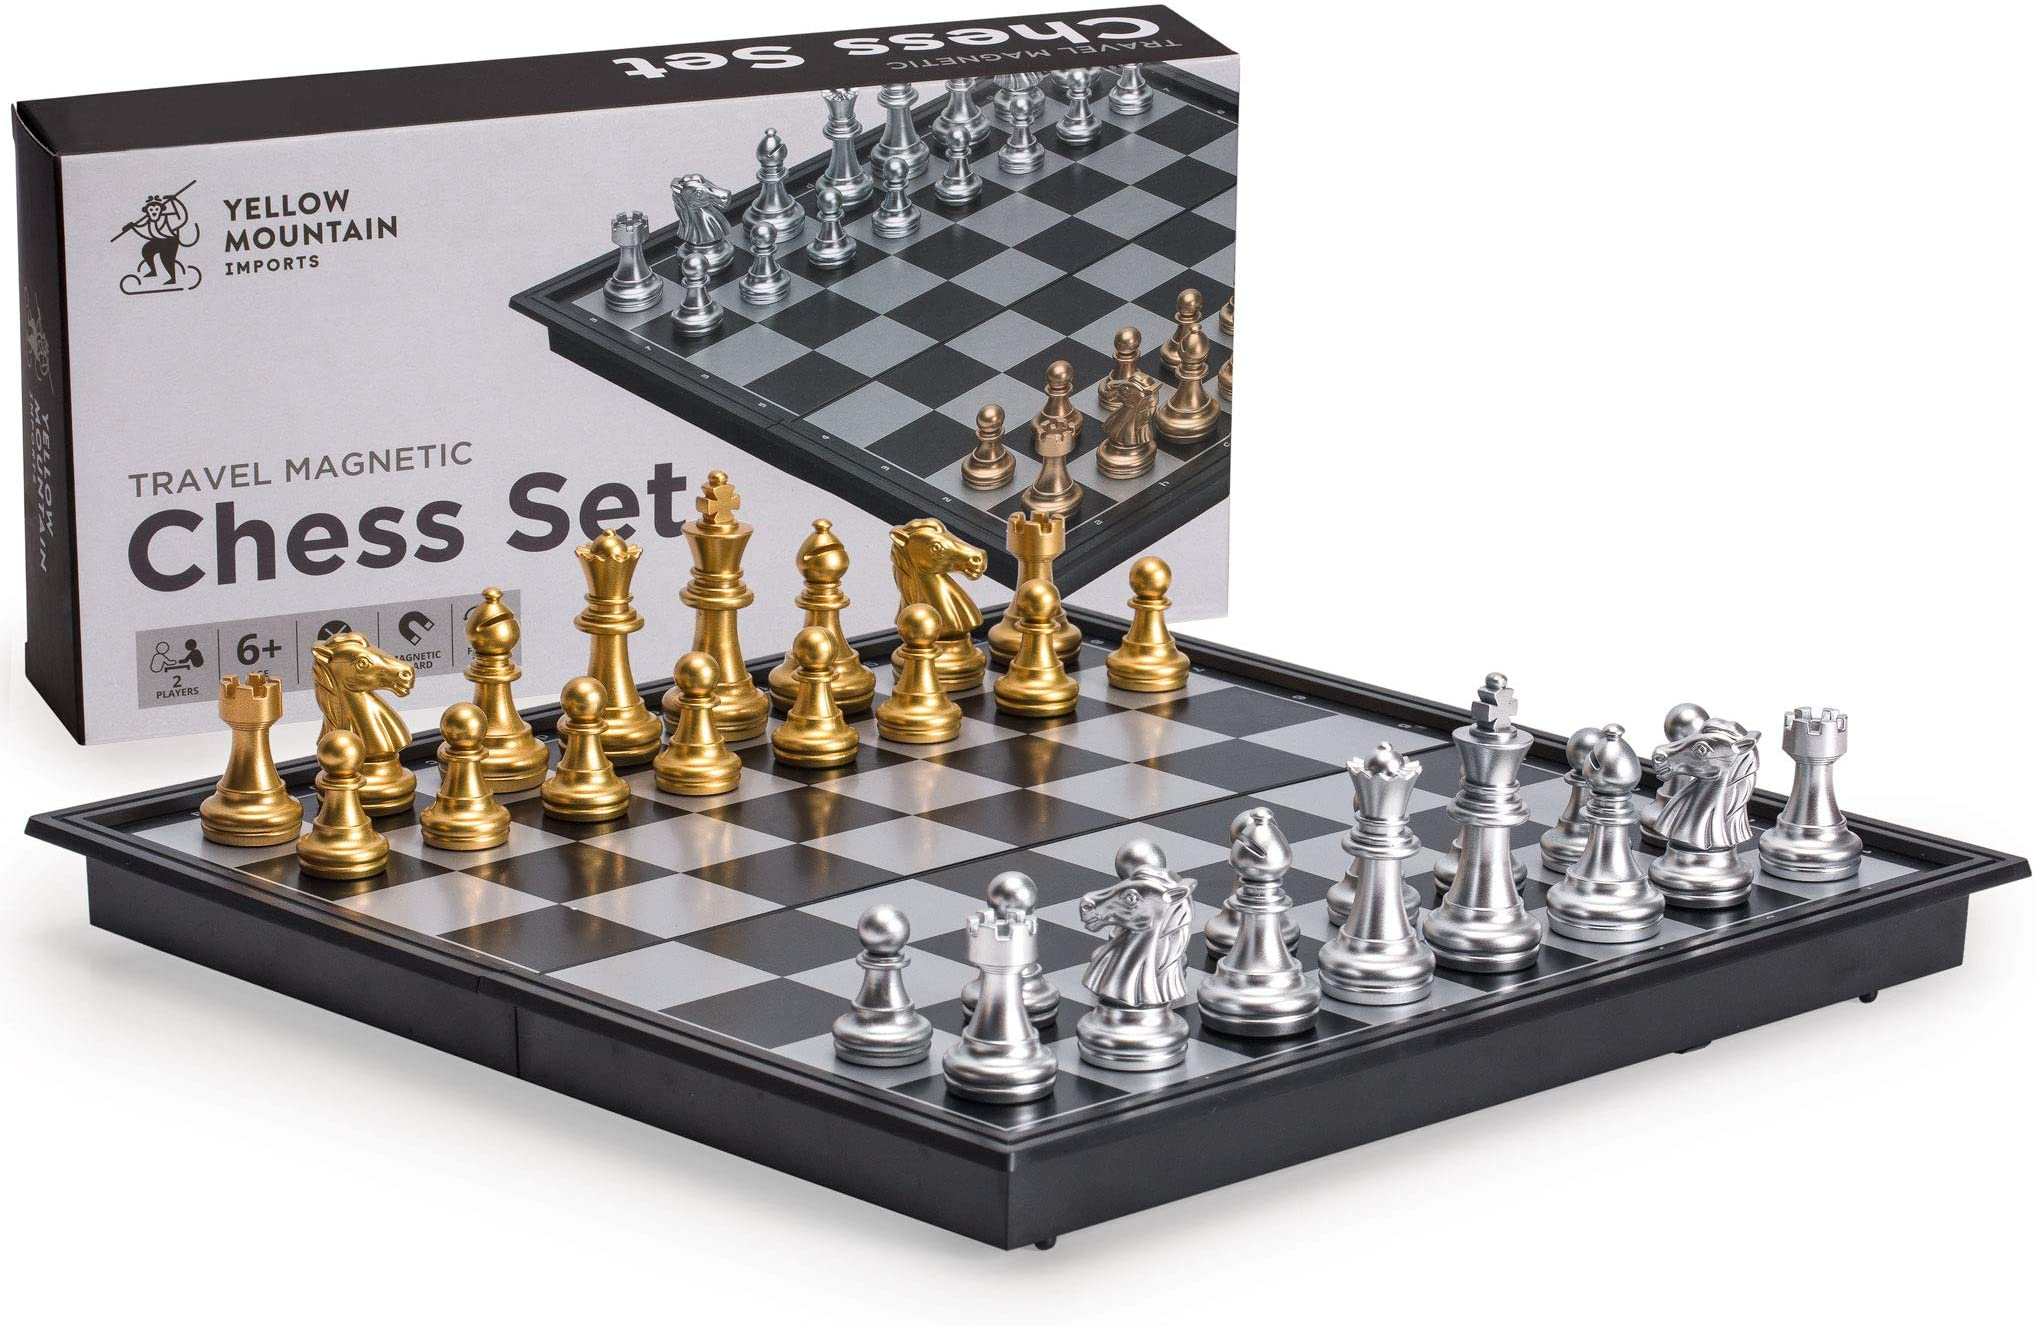 Tournament Chess Set Portable Travel Magnetic Folding Board Box Gift Kids Toy